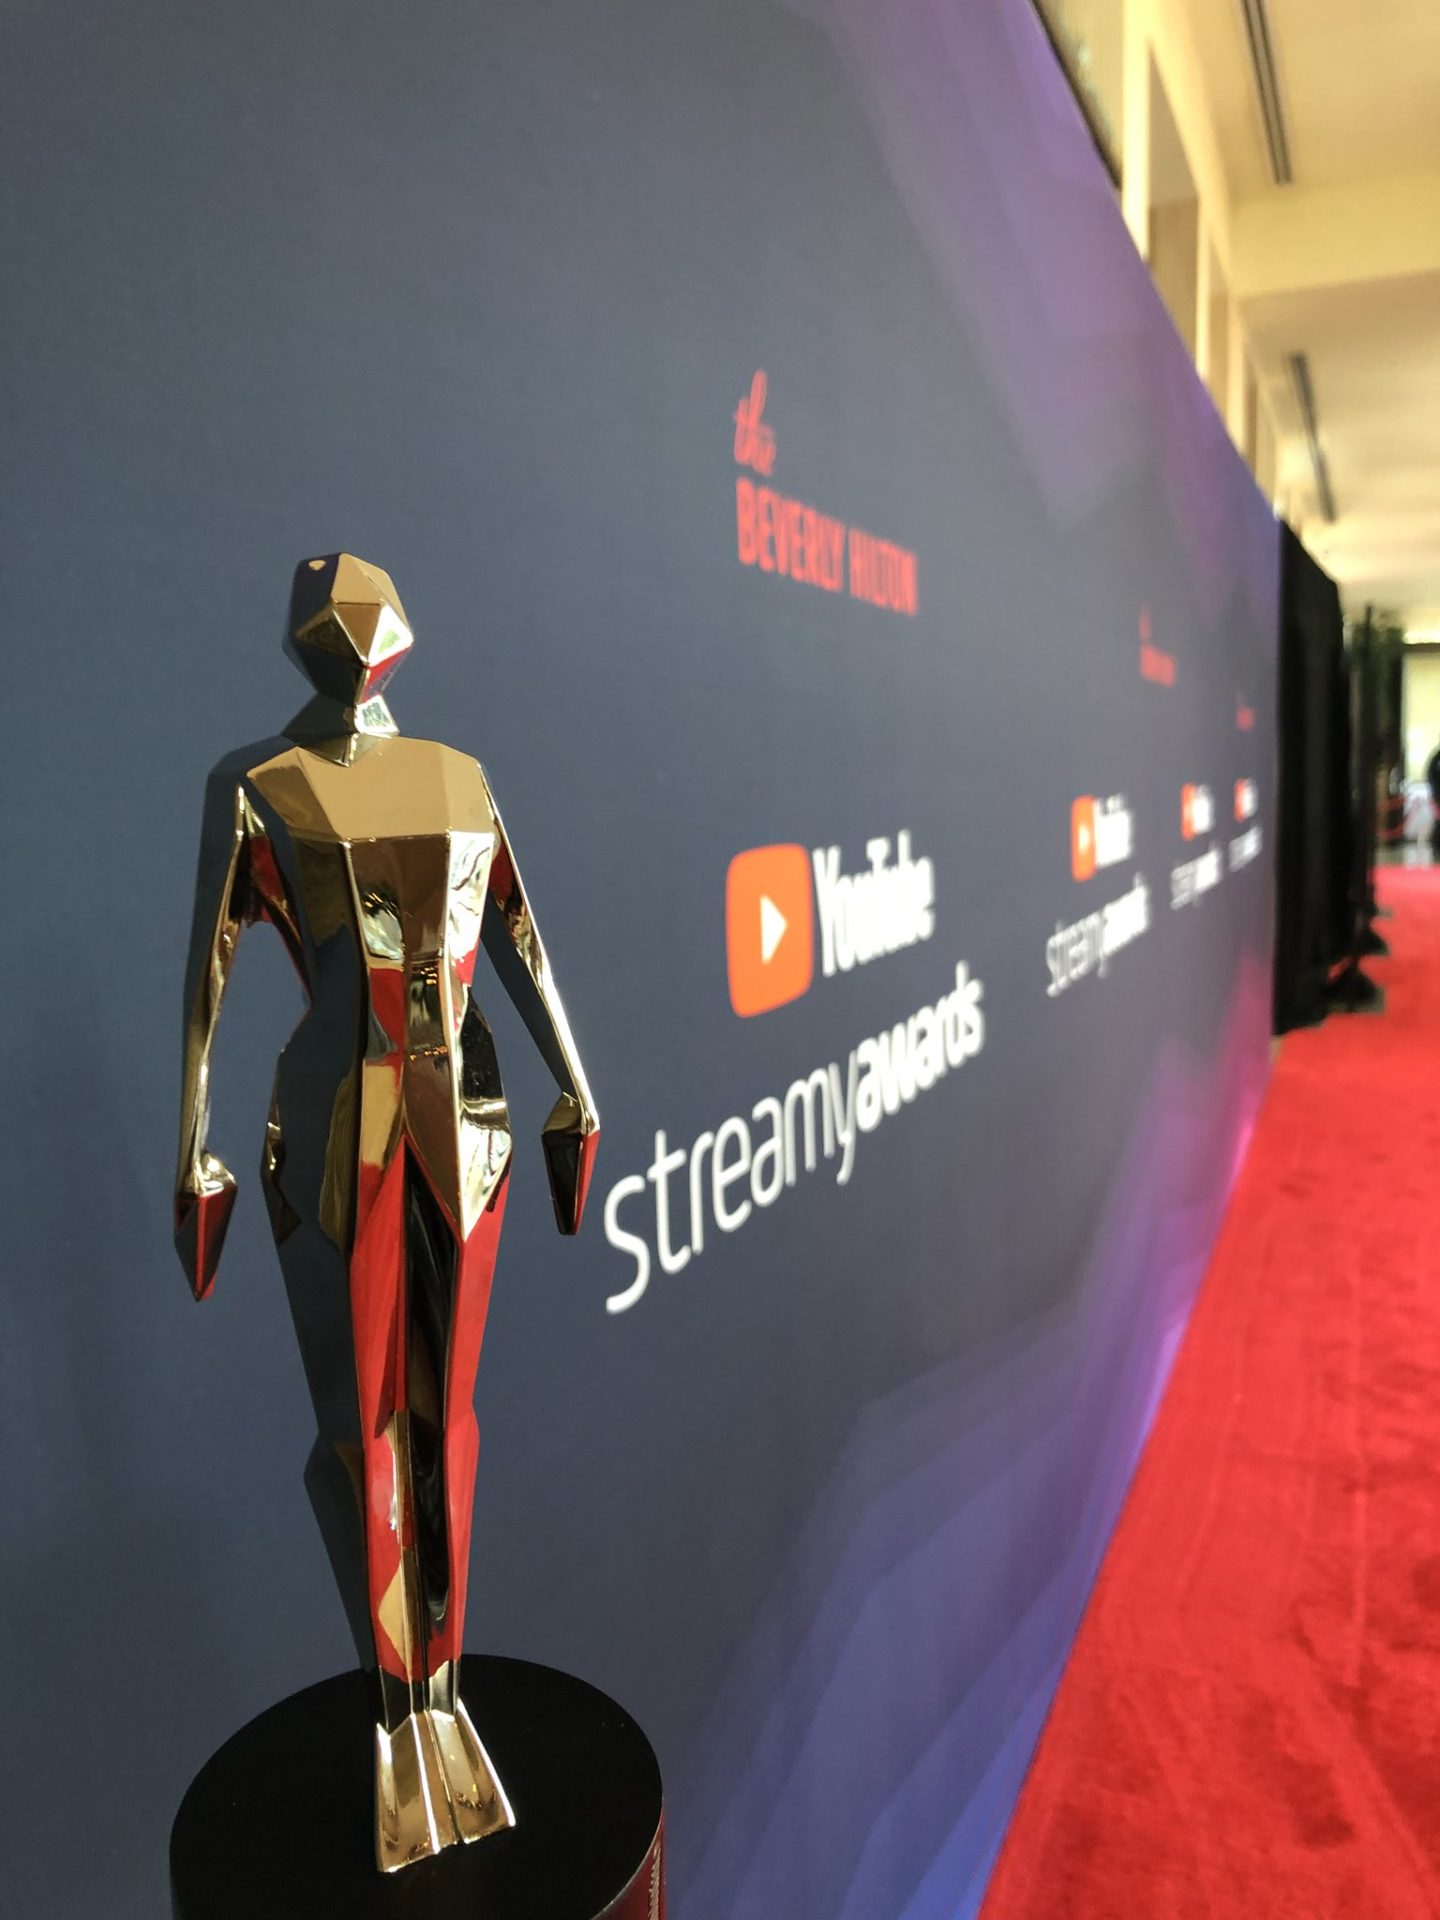 A photo of a Streamy Award trophy on the red carpet.